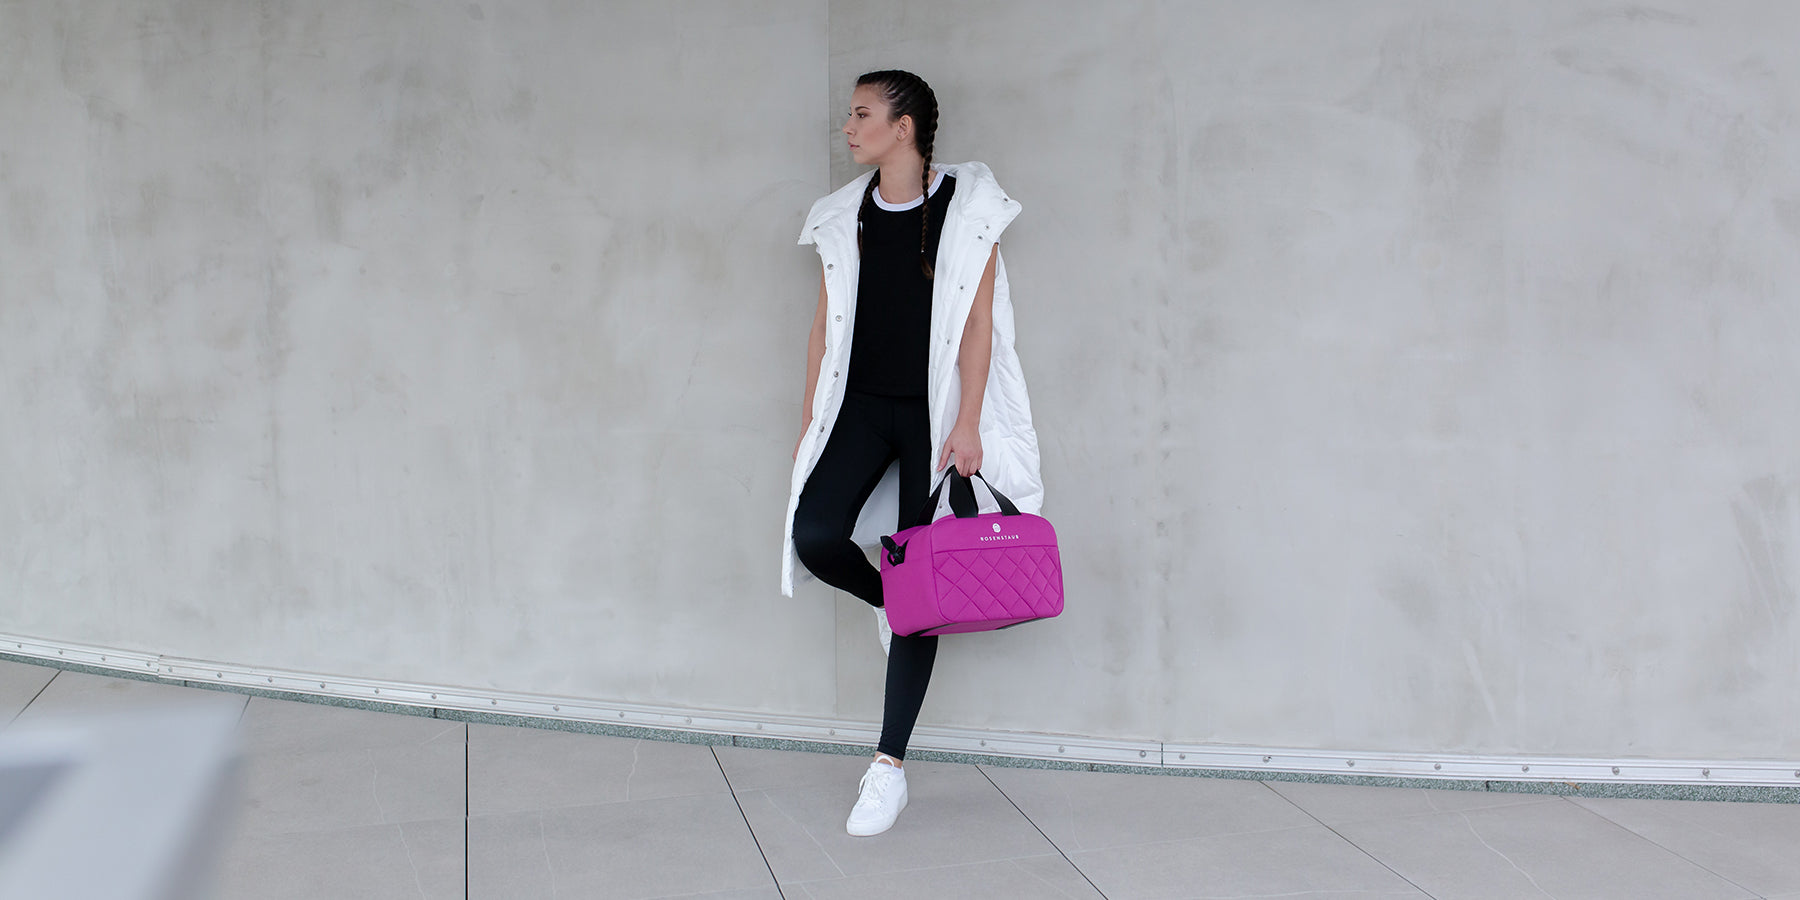 Neoprene Bag 34 - from gym class to office